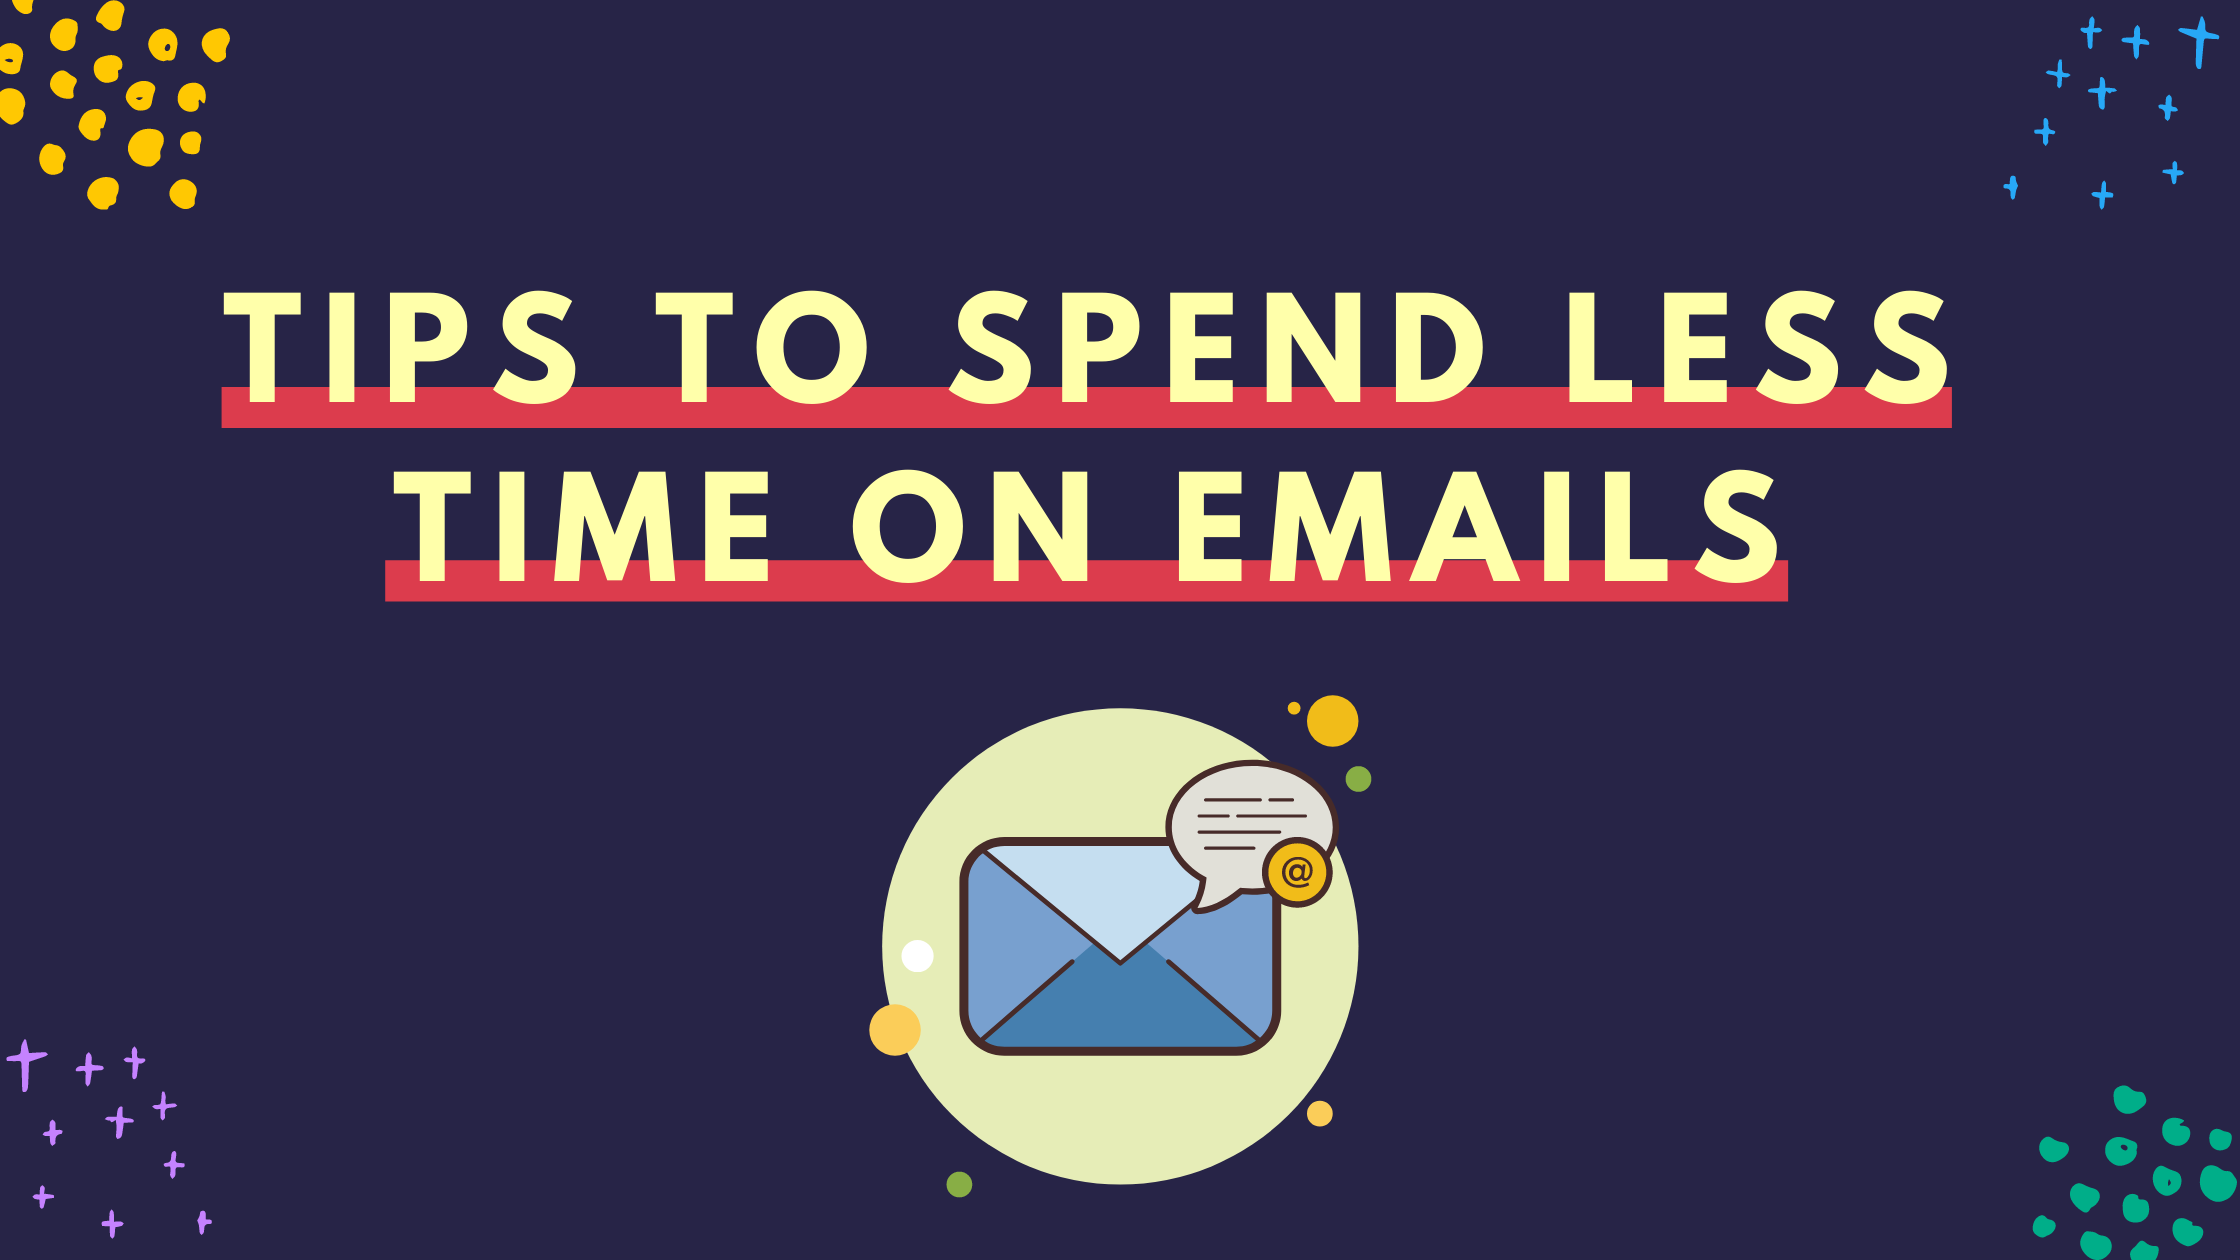 spend less time on emails, time spent on email statistics, how to get less emails, how to stop unwanted emails in gmail